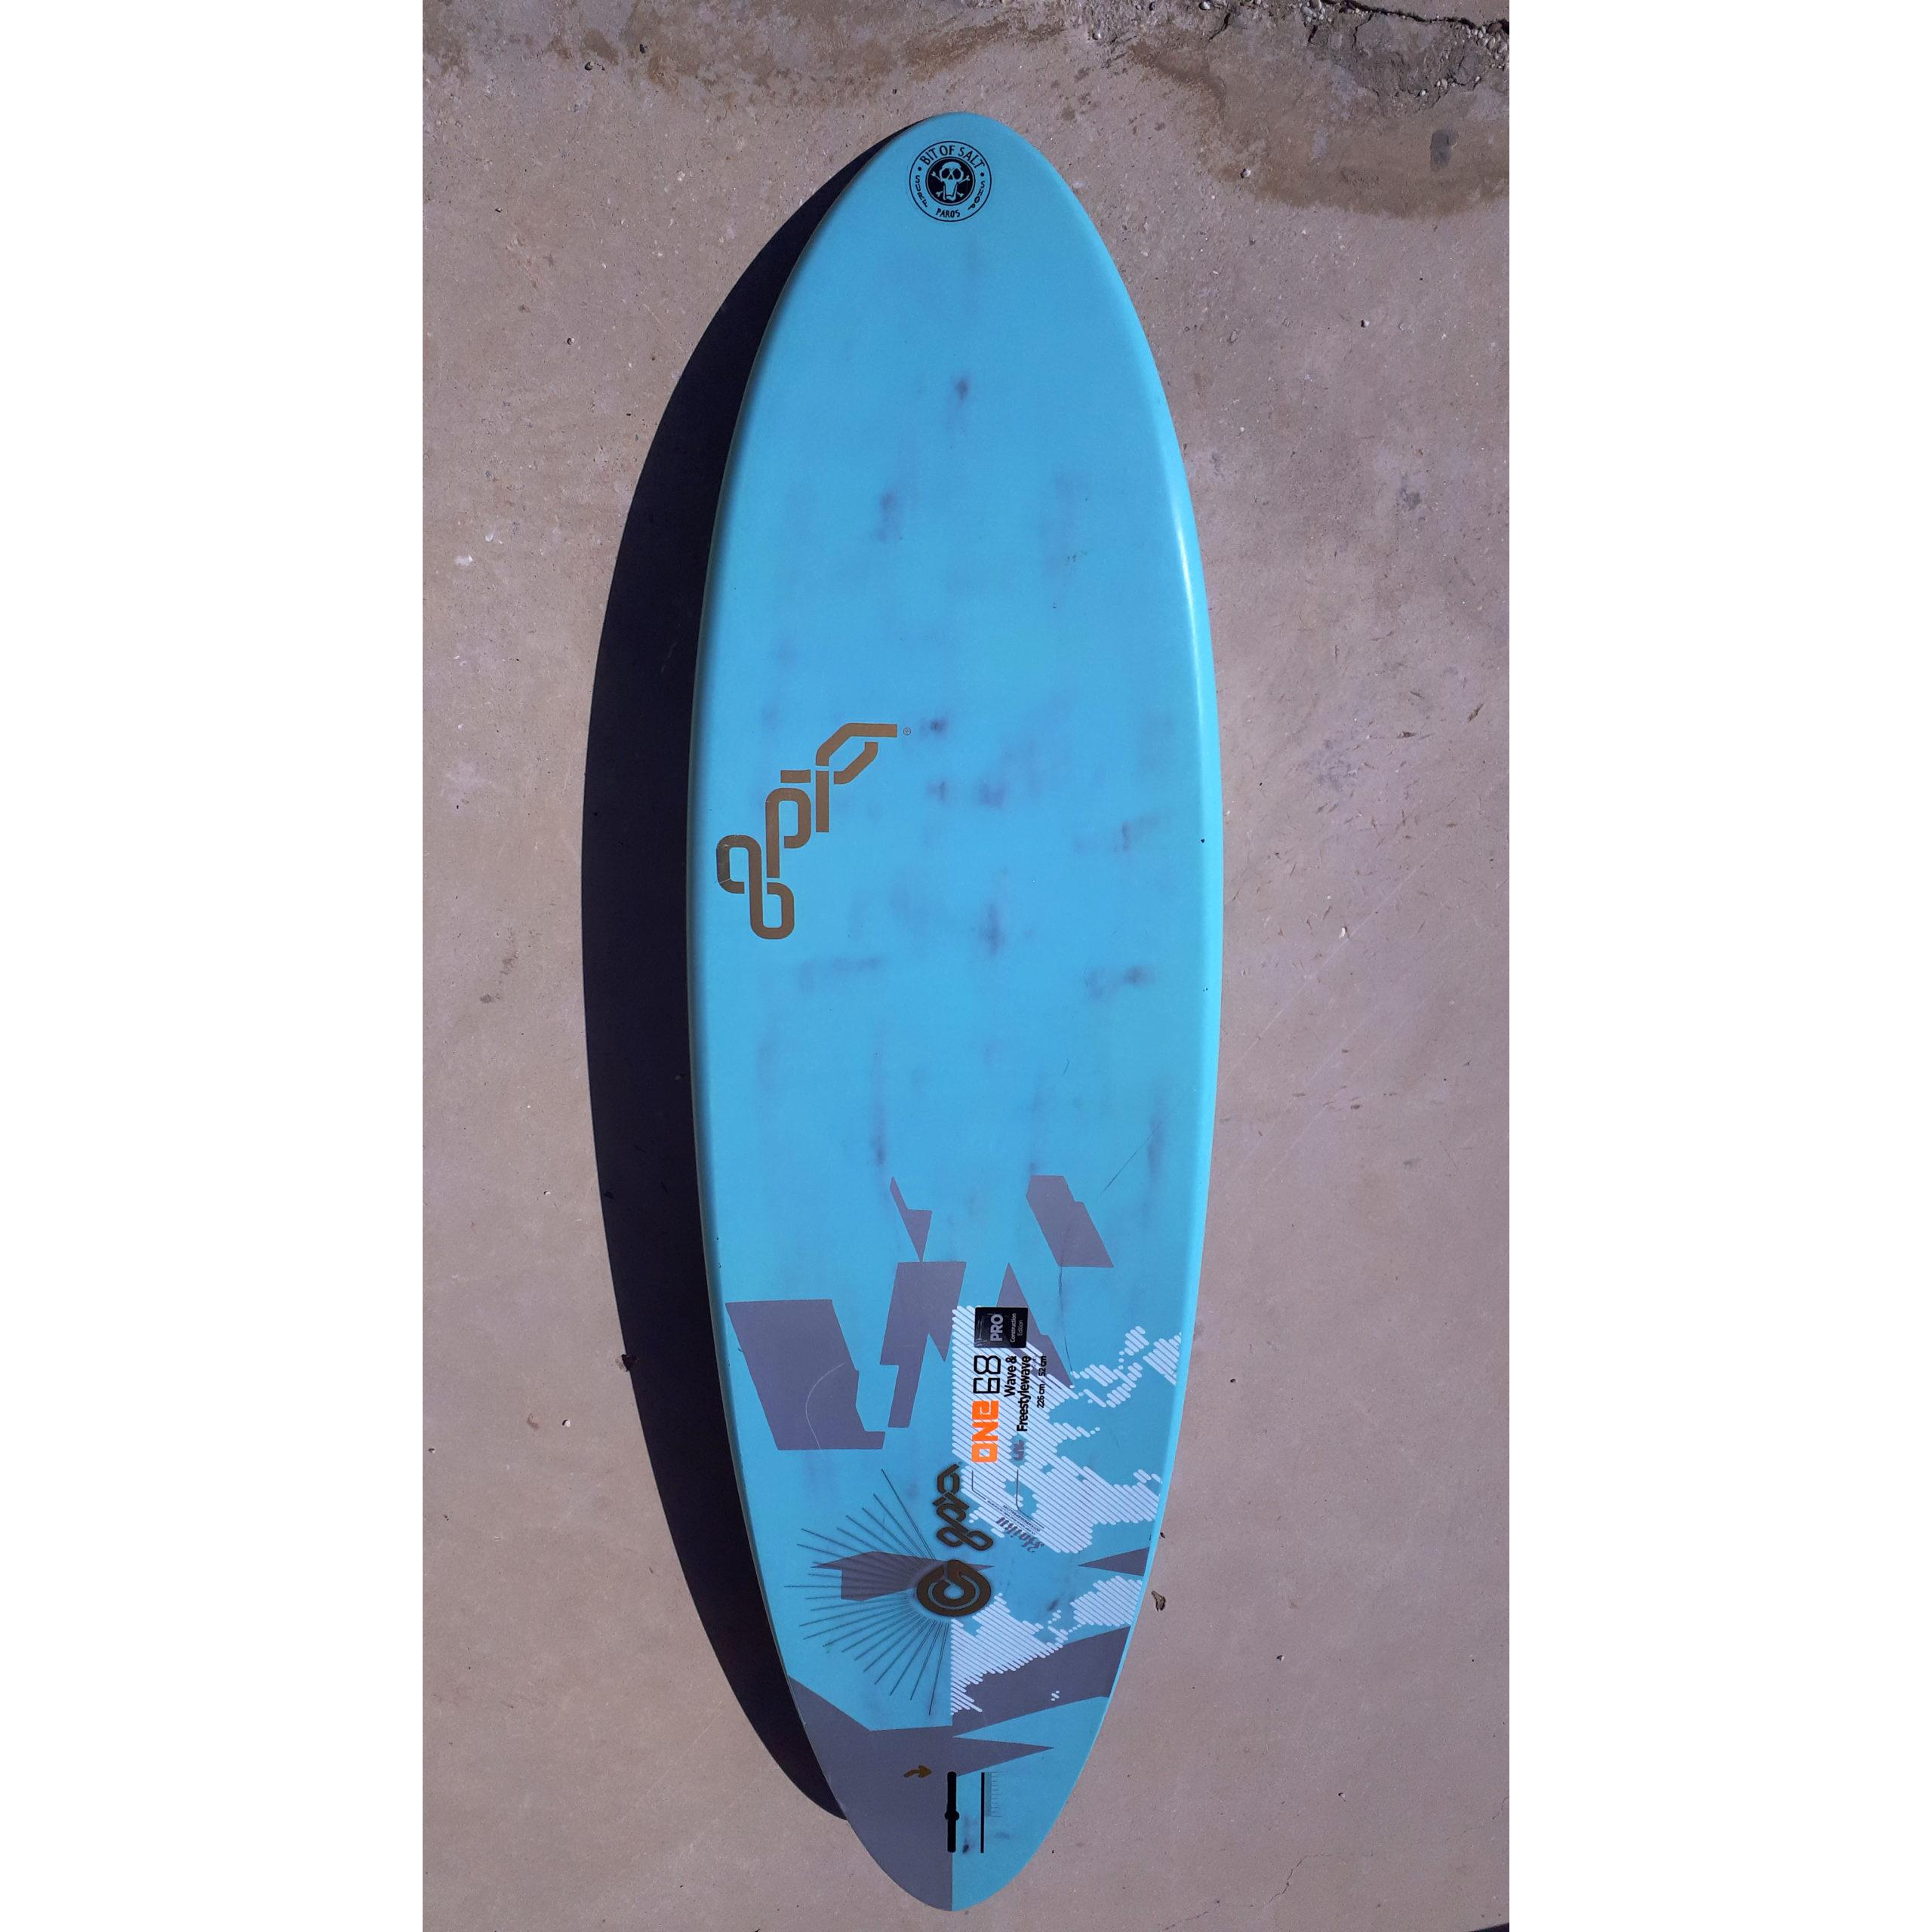 FANATIC WAVE &FREESTYLE 68lt PRO (AS NEW)